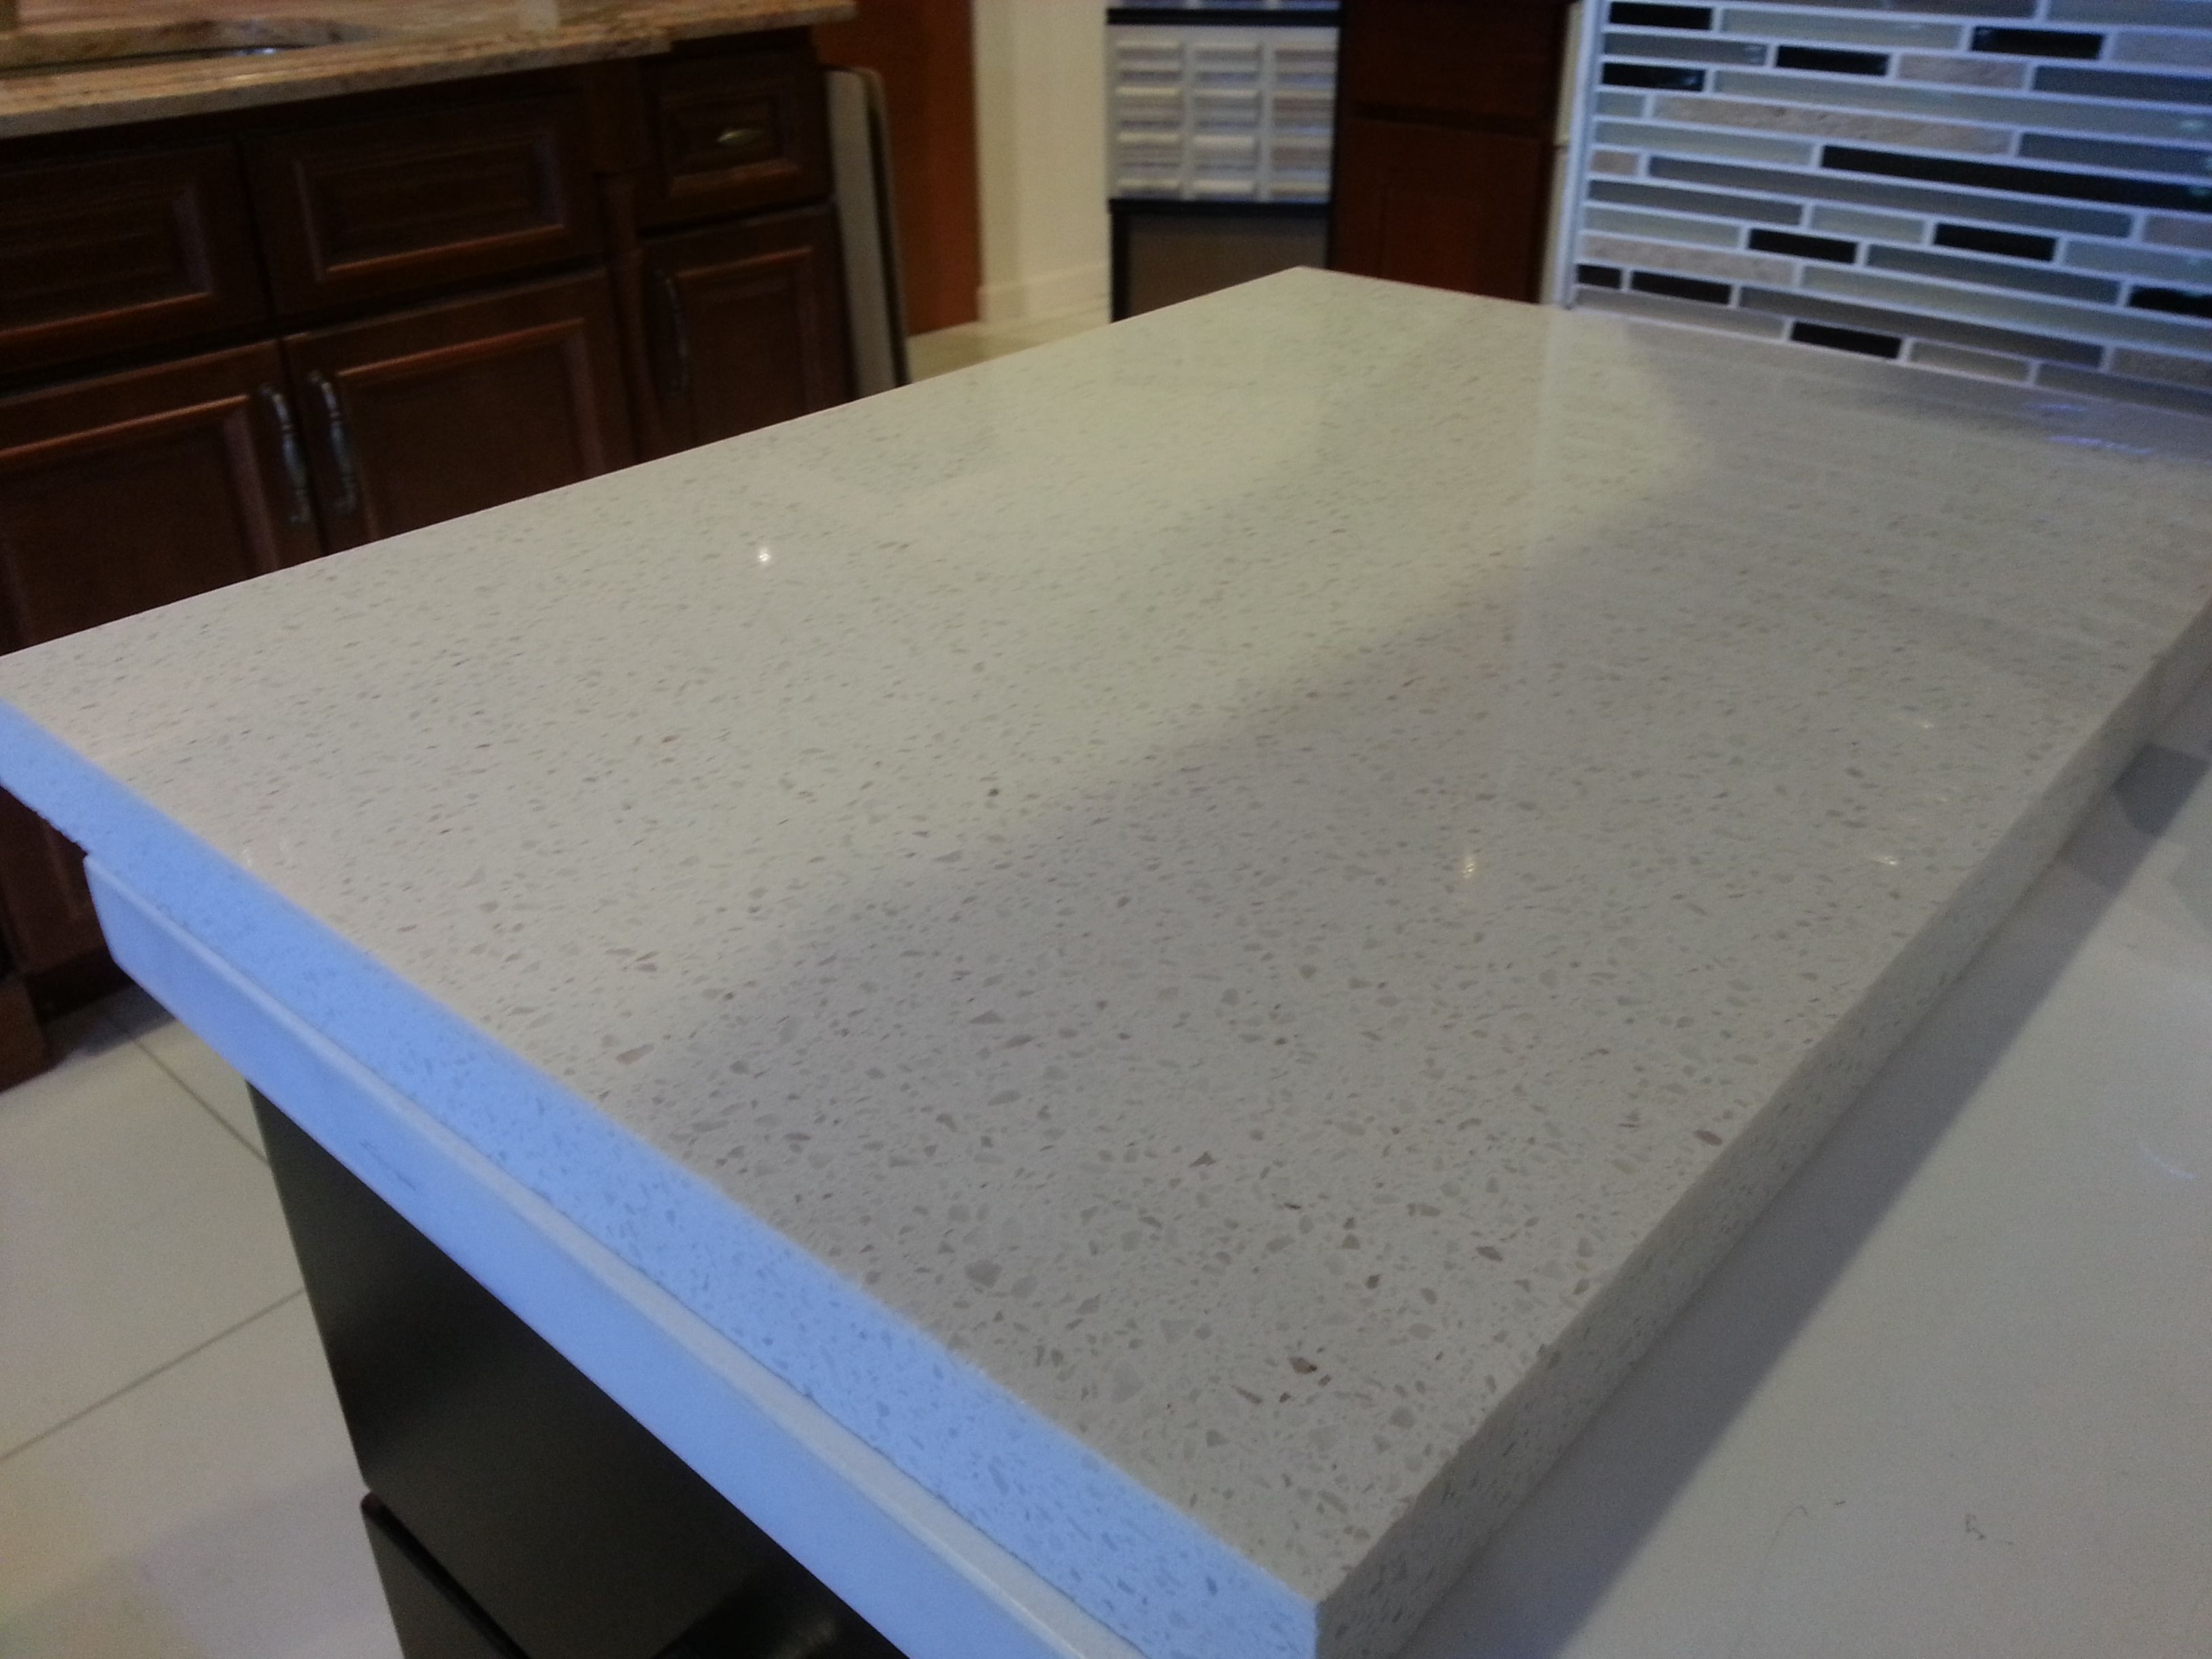 White quartz countertop slab cottage kitchen pinterest What is the whitest quartz countertop